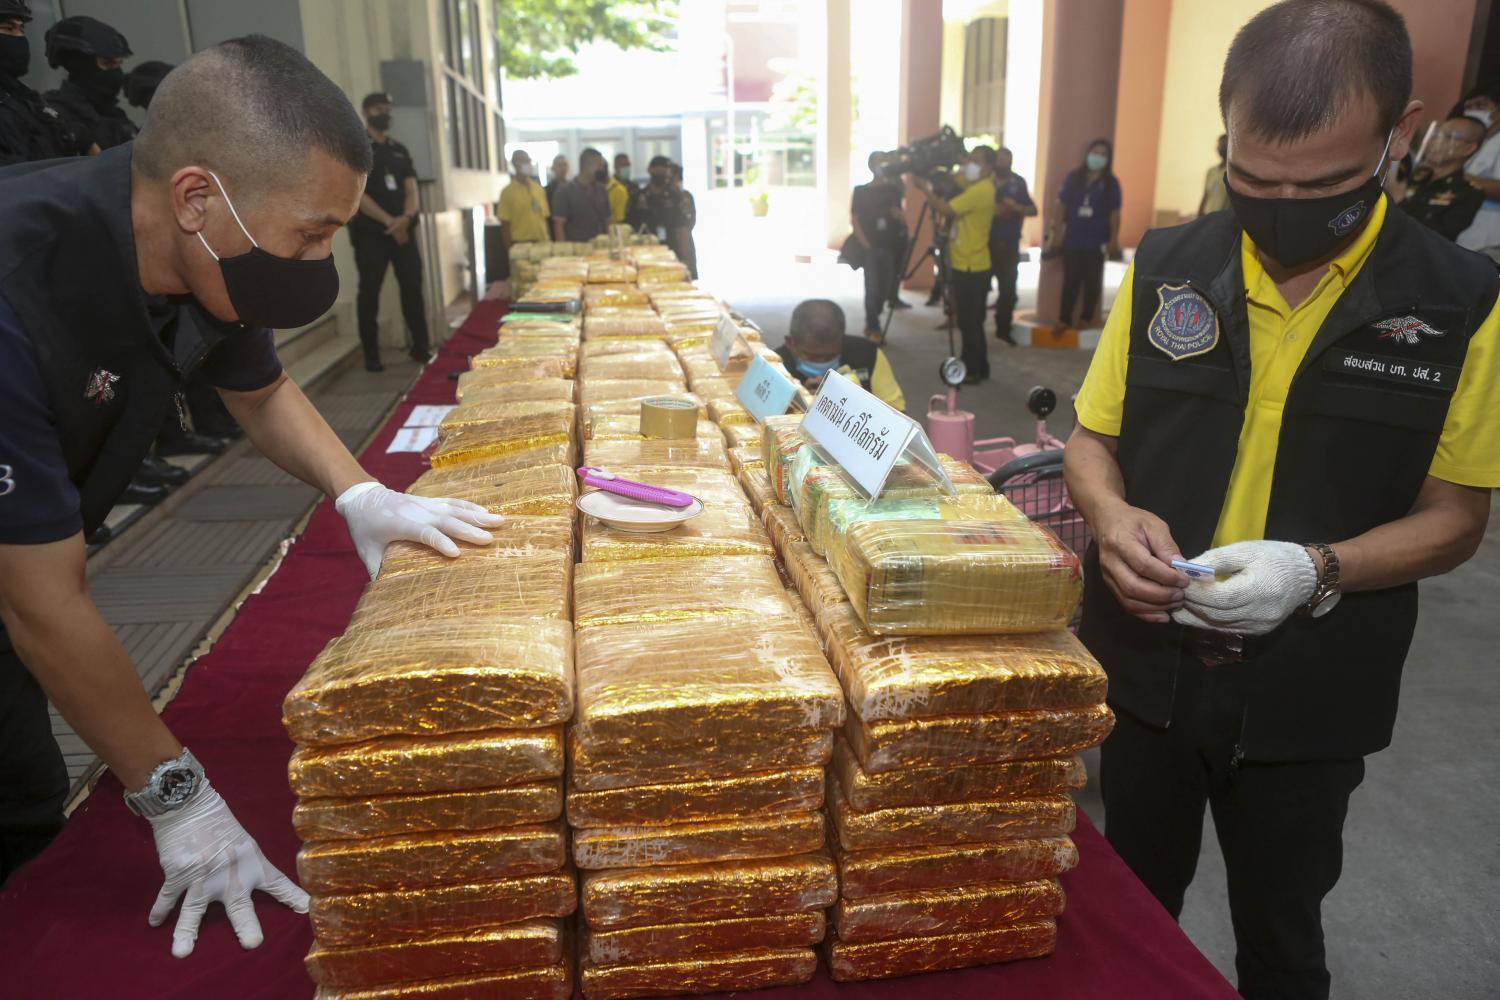 Police display drugs seized in three huge busts at the weekend at a Narcotics Suppression Bureau briefing at its headquarters on Vibhavadi Rangsit Road. About 1.48 million speed pills, 2,400kg of marijuana and 6kg of ketamine were seized.(Photo by Pattarapong Chatpattarasil)